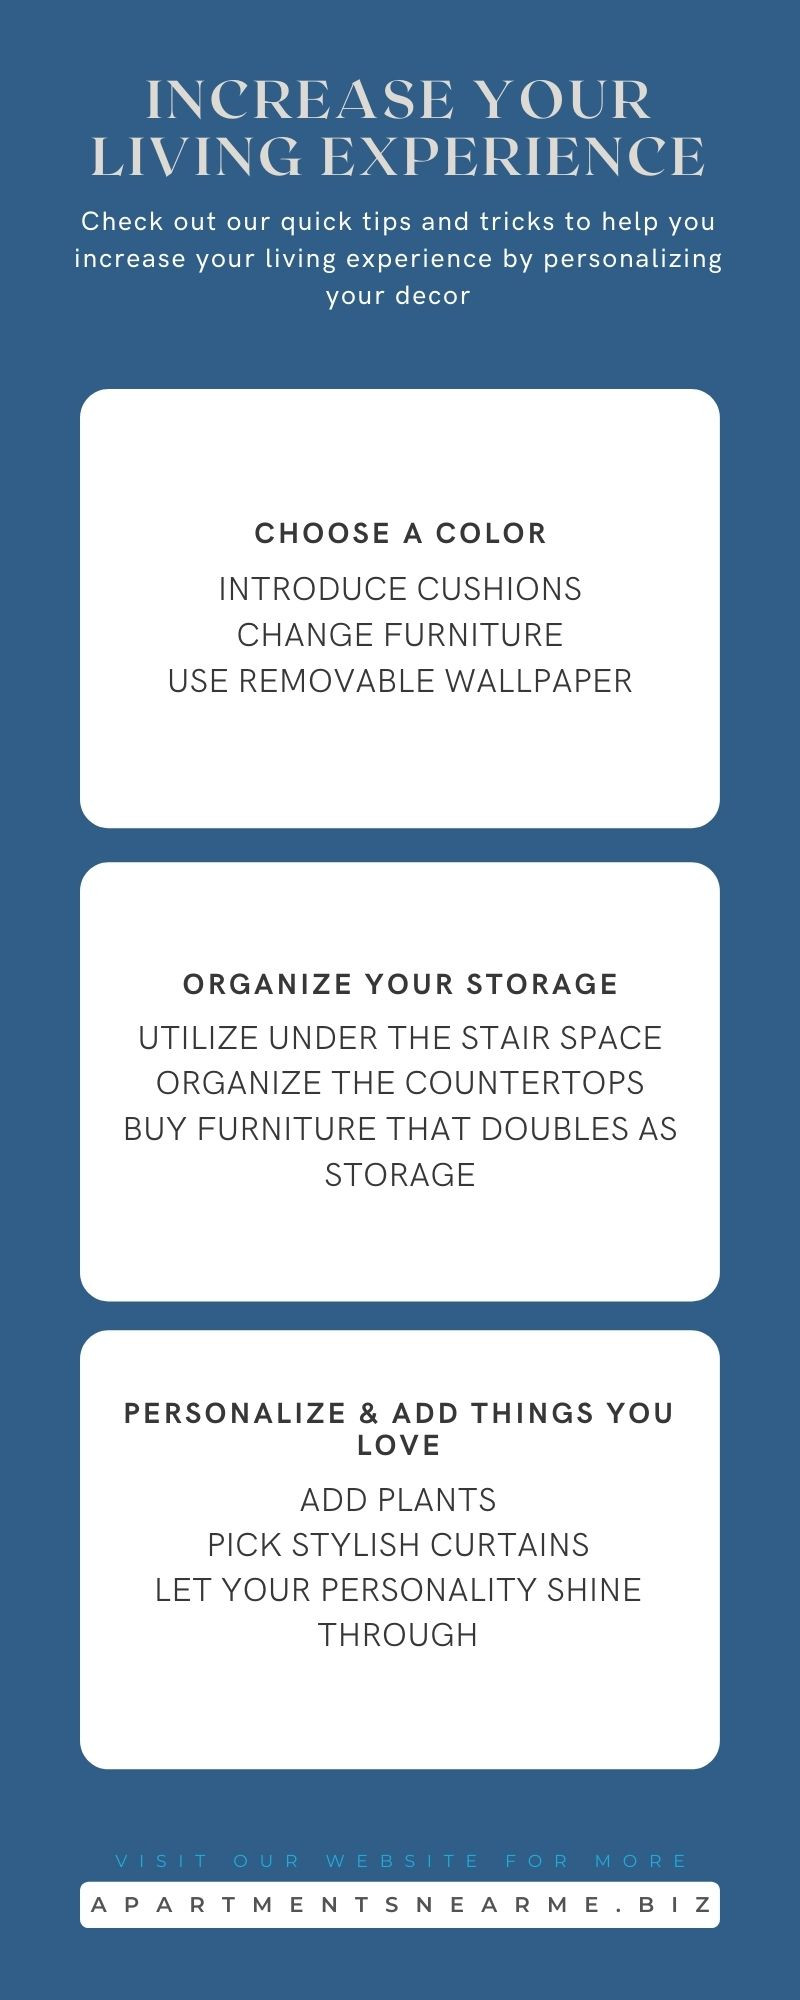 Apartment Design Strategies to Increase Your Living Experience Infographic